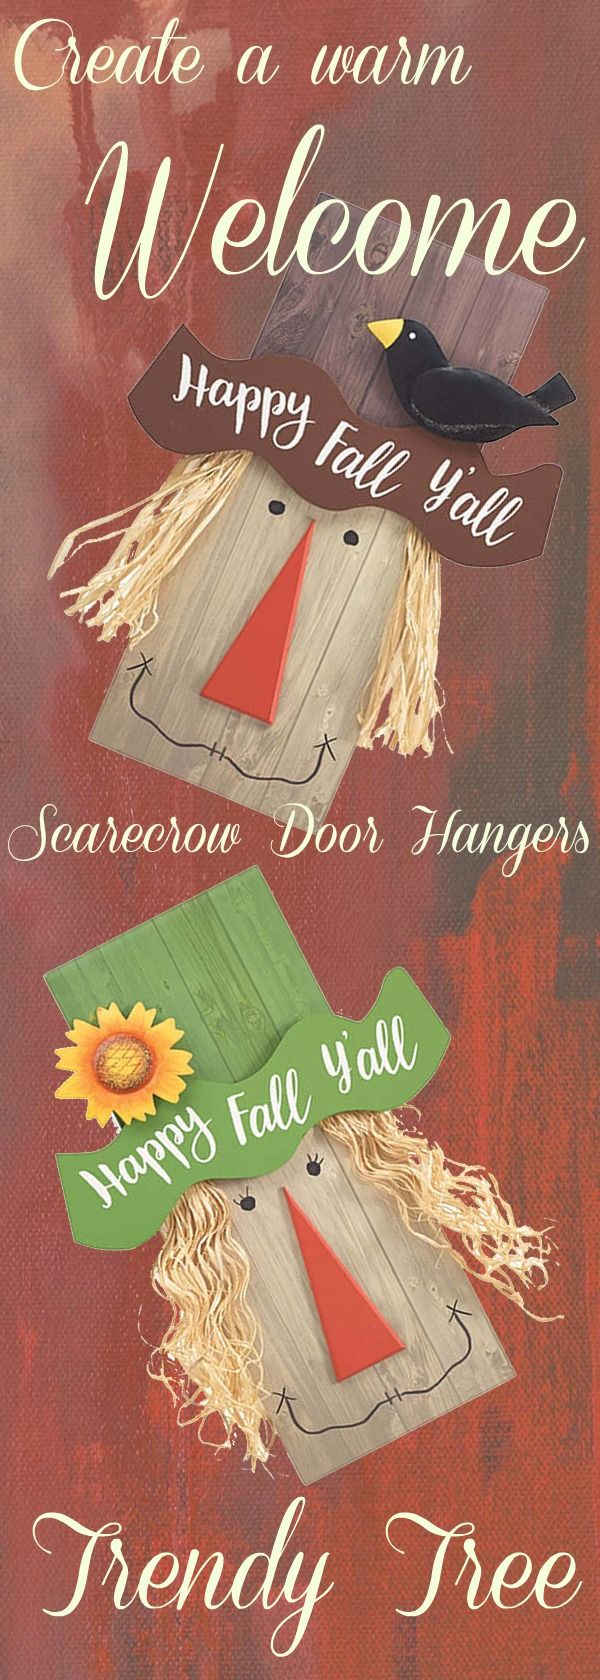 Wood plank scarecrow door hangers from Burton & Burton. New for 2017 and available now at Trendy Tree! http://www.trendytree.com #TrendyTree #scarecrow